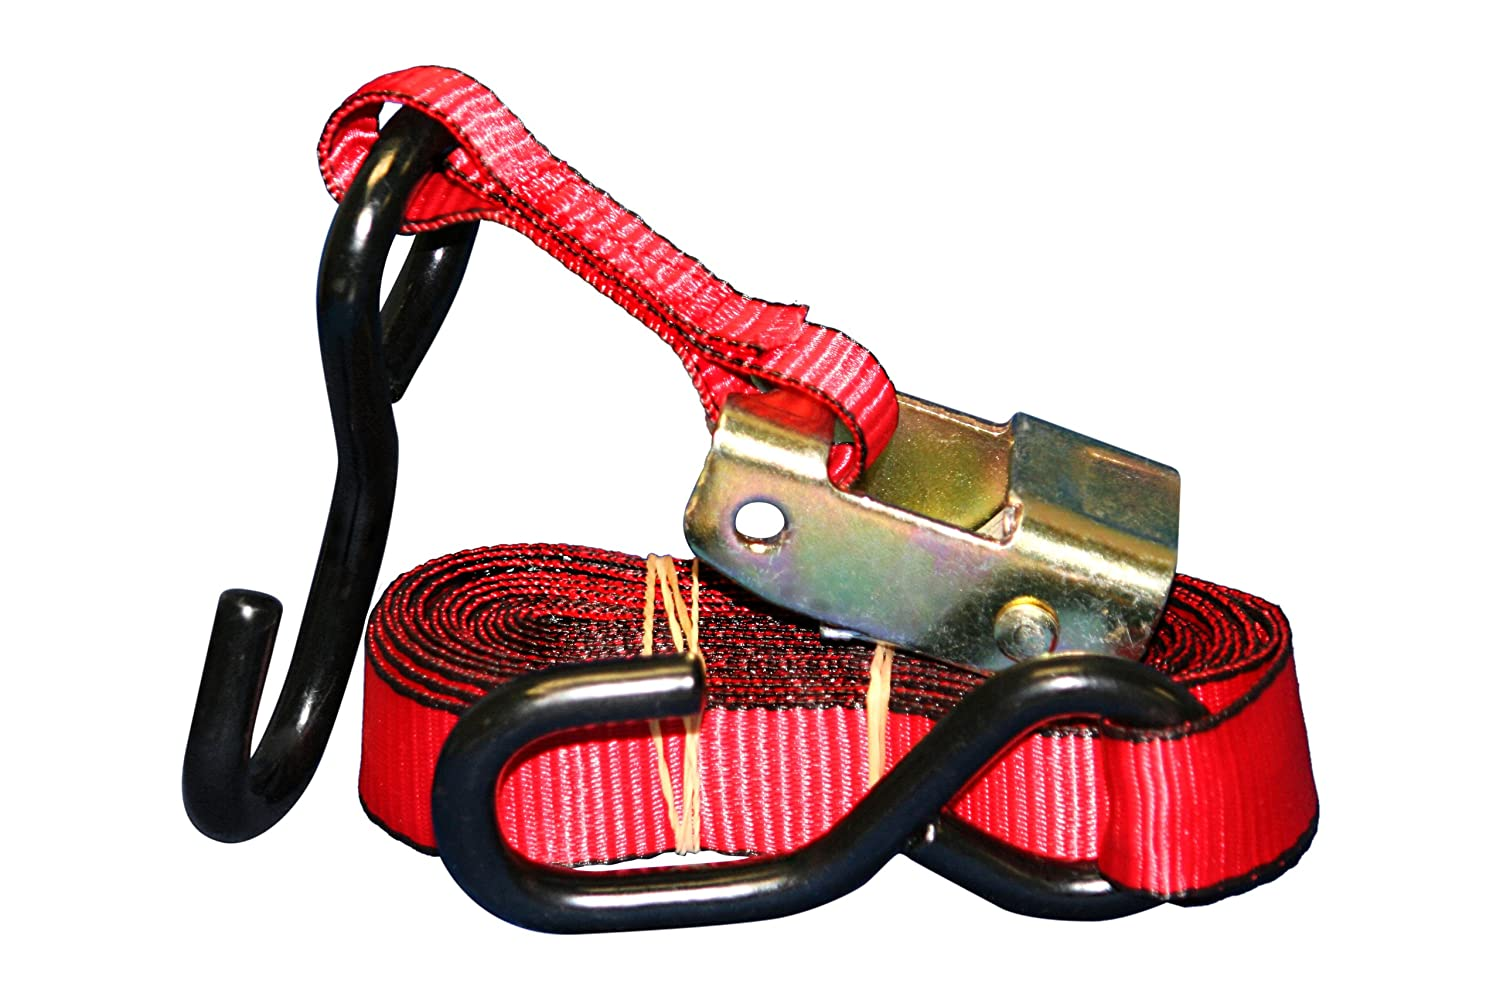 Everest Premium Cambuckle Straps – 1 PK – 1 IN – 6 FT – 300 LBS Working Load – 900 LBS Break Strength – Ratchet Tie Down Alternative – Cargo Straps Perfect for Moving Appliances, Lawn Equipment and Motorcycles S101